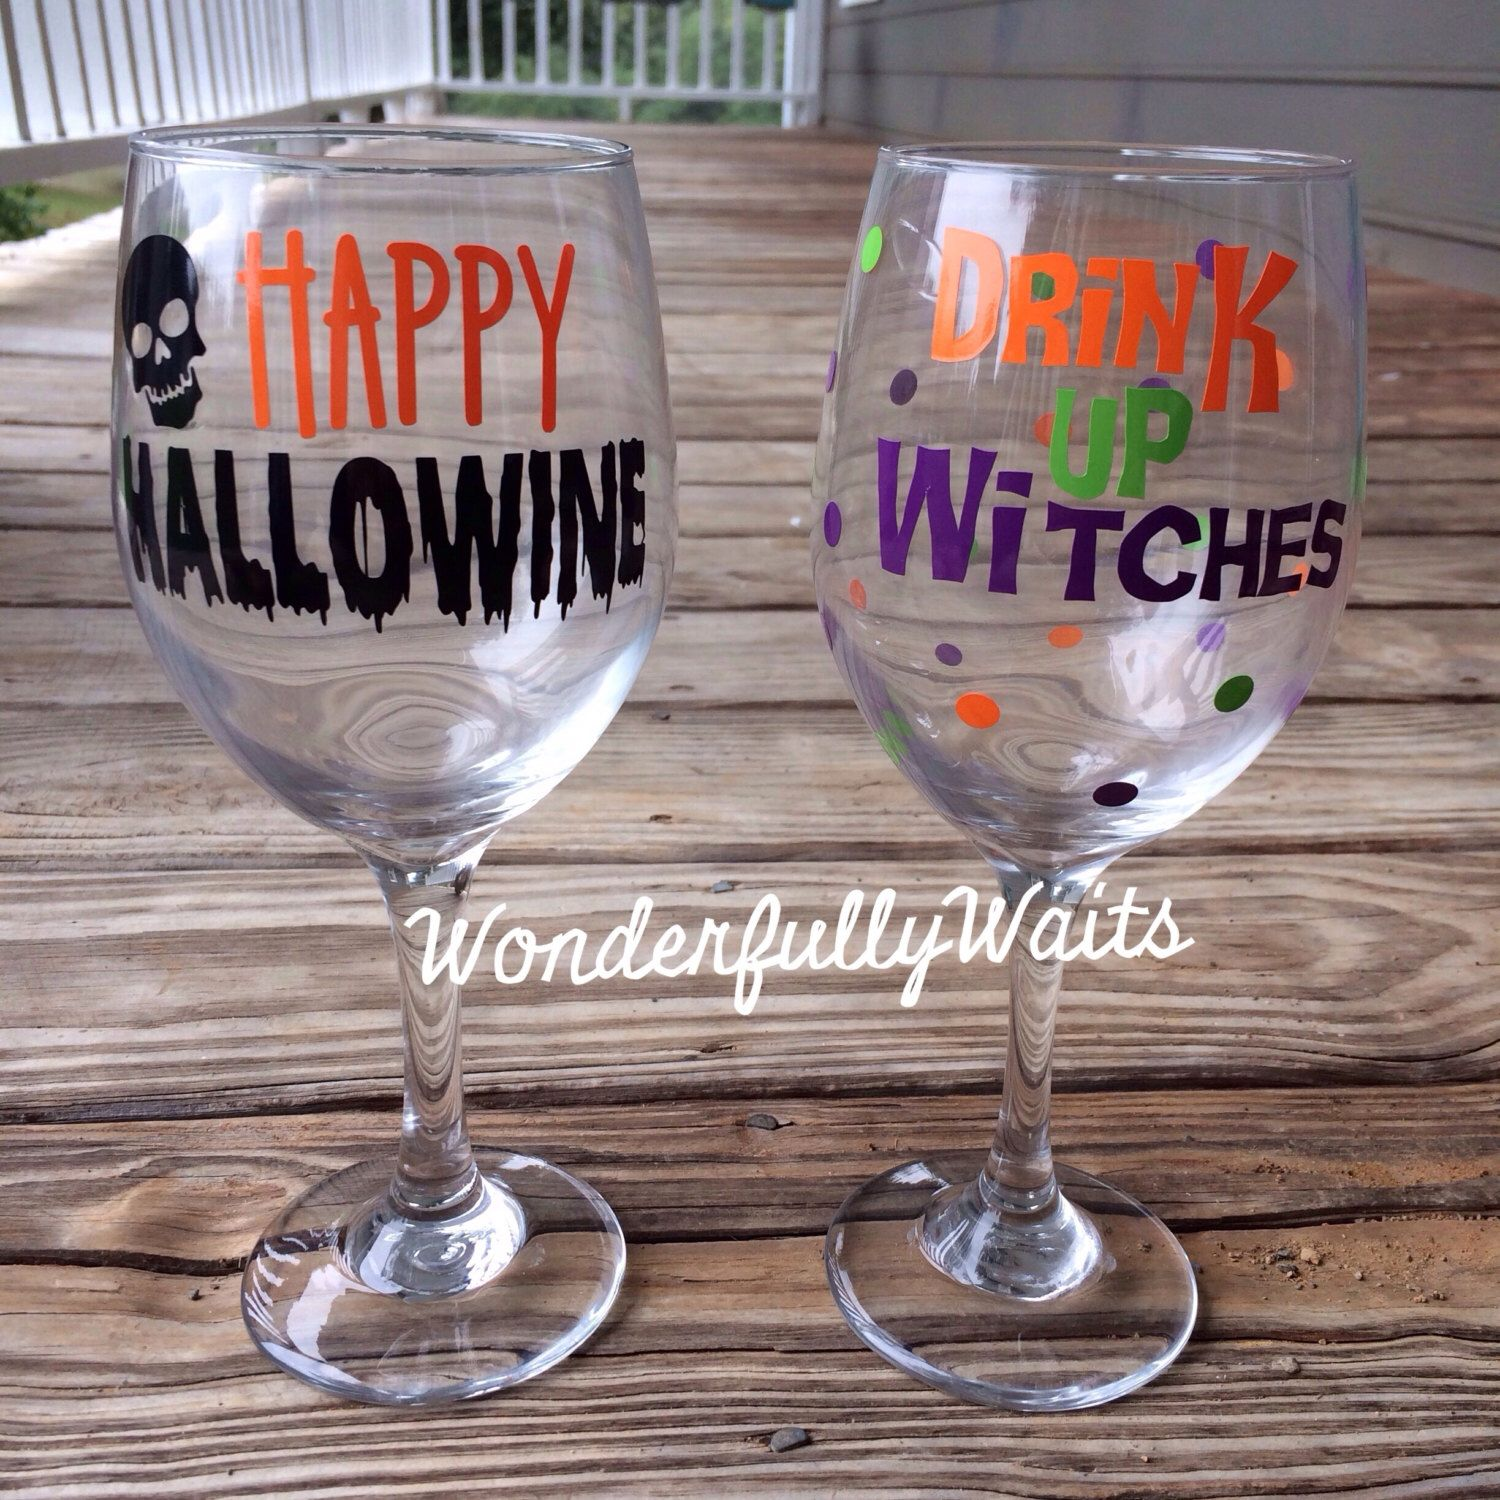 DIY SERIES Halloween Wine Glass Vinyl Decal Happy Hallowine - Vinyl decals for drinking glasses